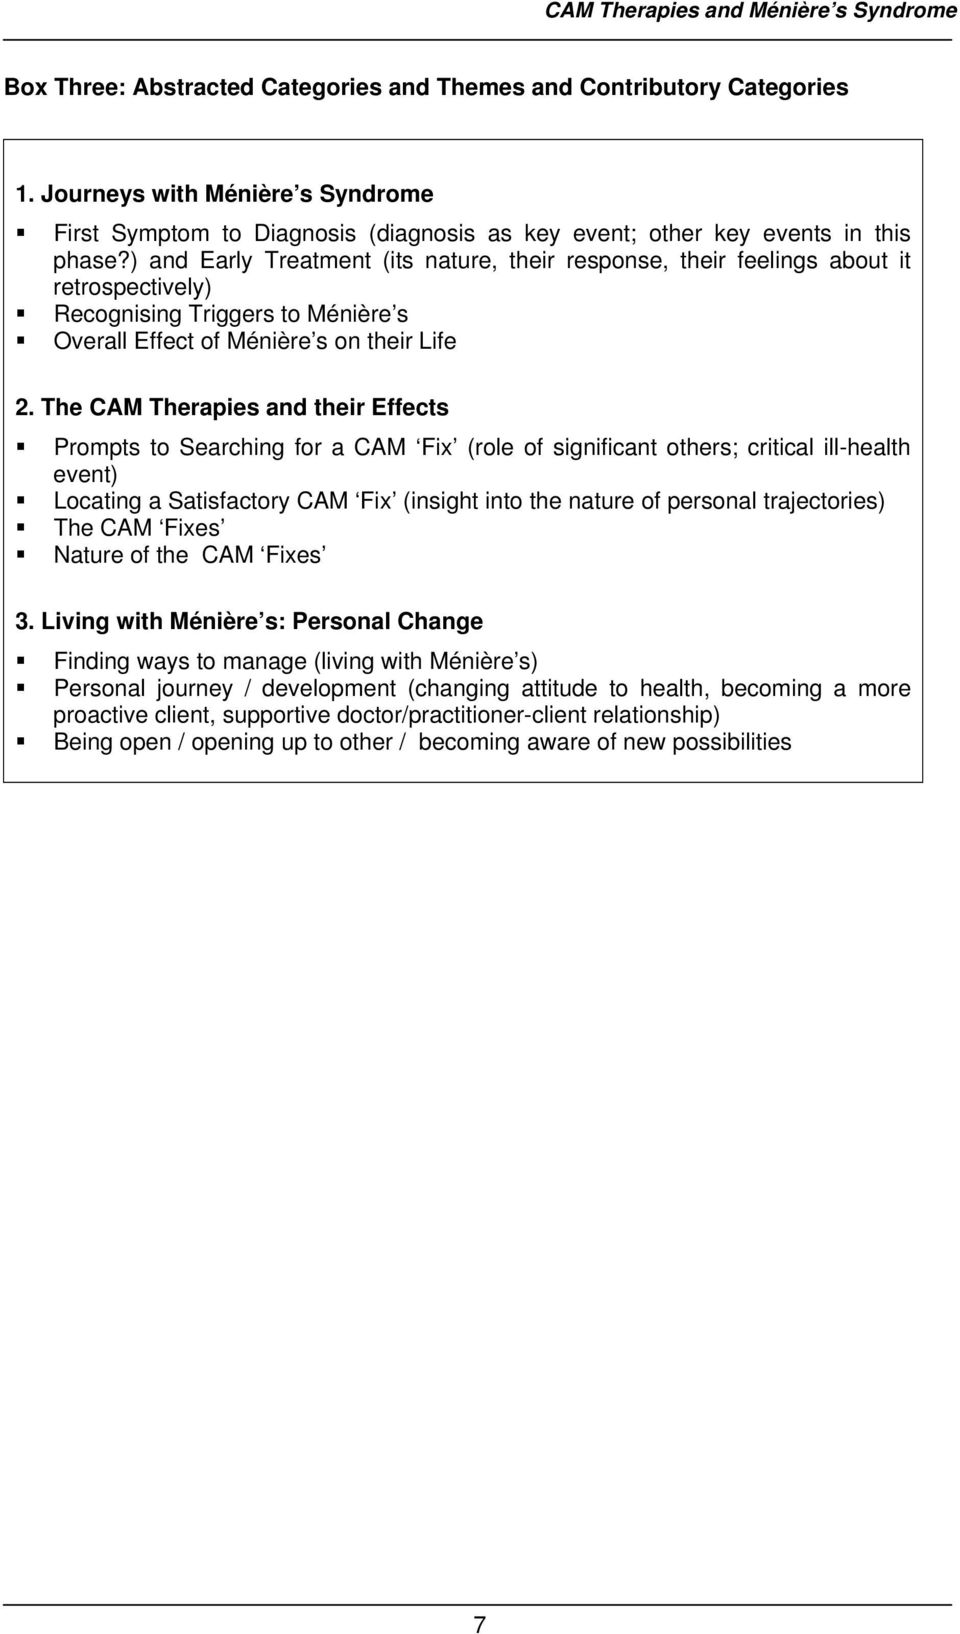 The CAM Therapies and their Effects Prompts to Searching for a CAM Fix (role of significant others; critical ill-health event) Locating a Satisfactory CAM Fix (insight into the nature of personal